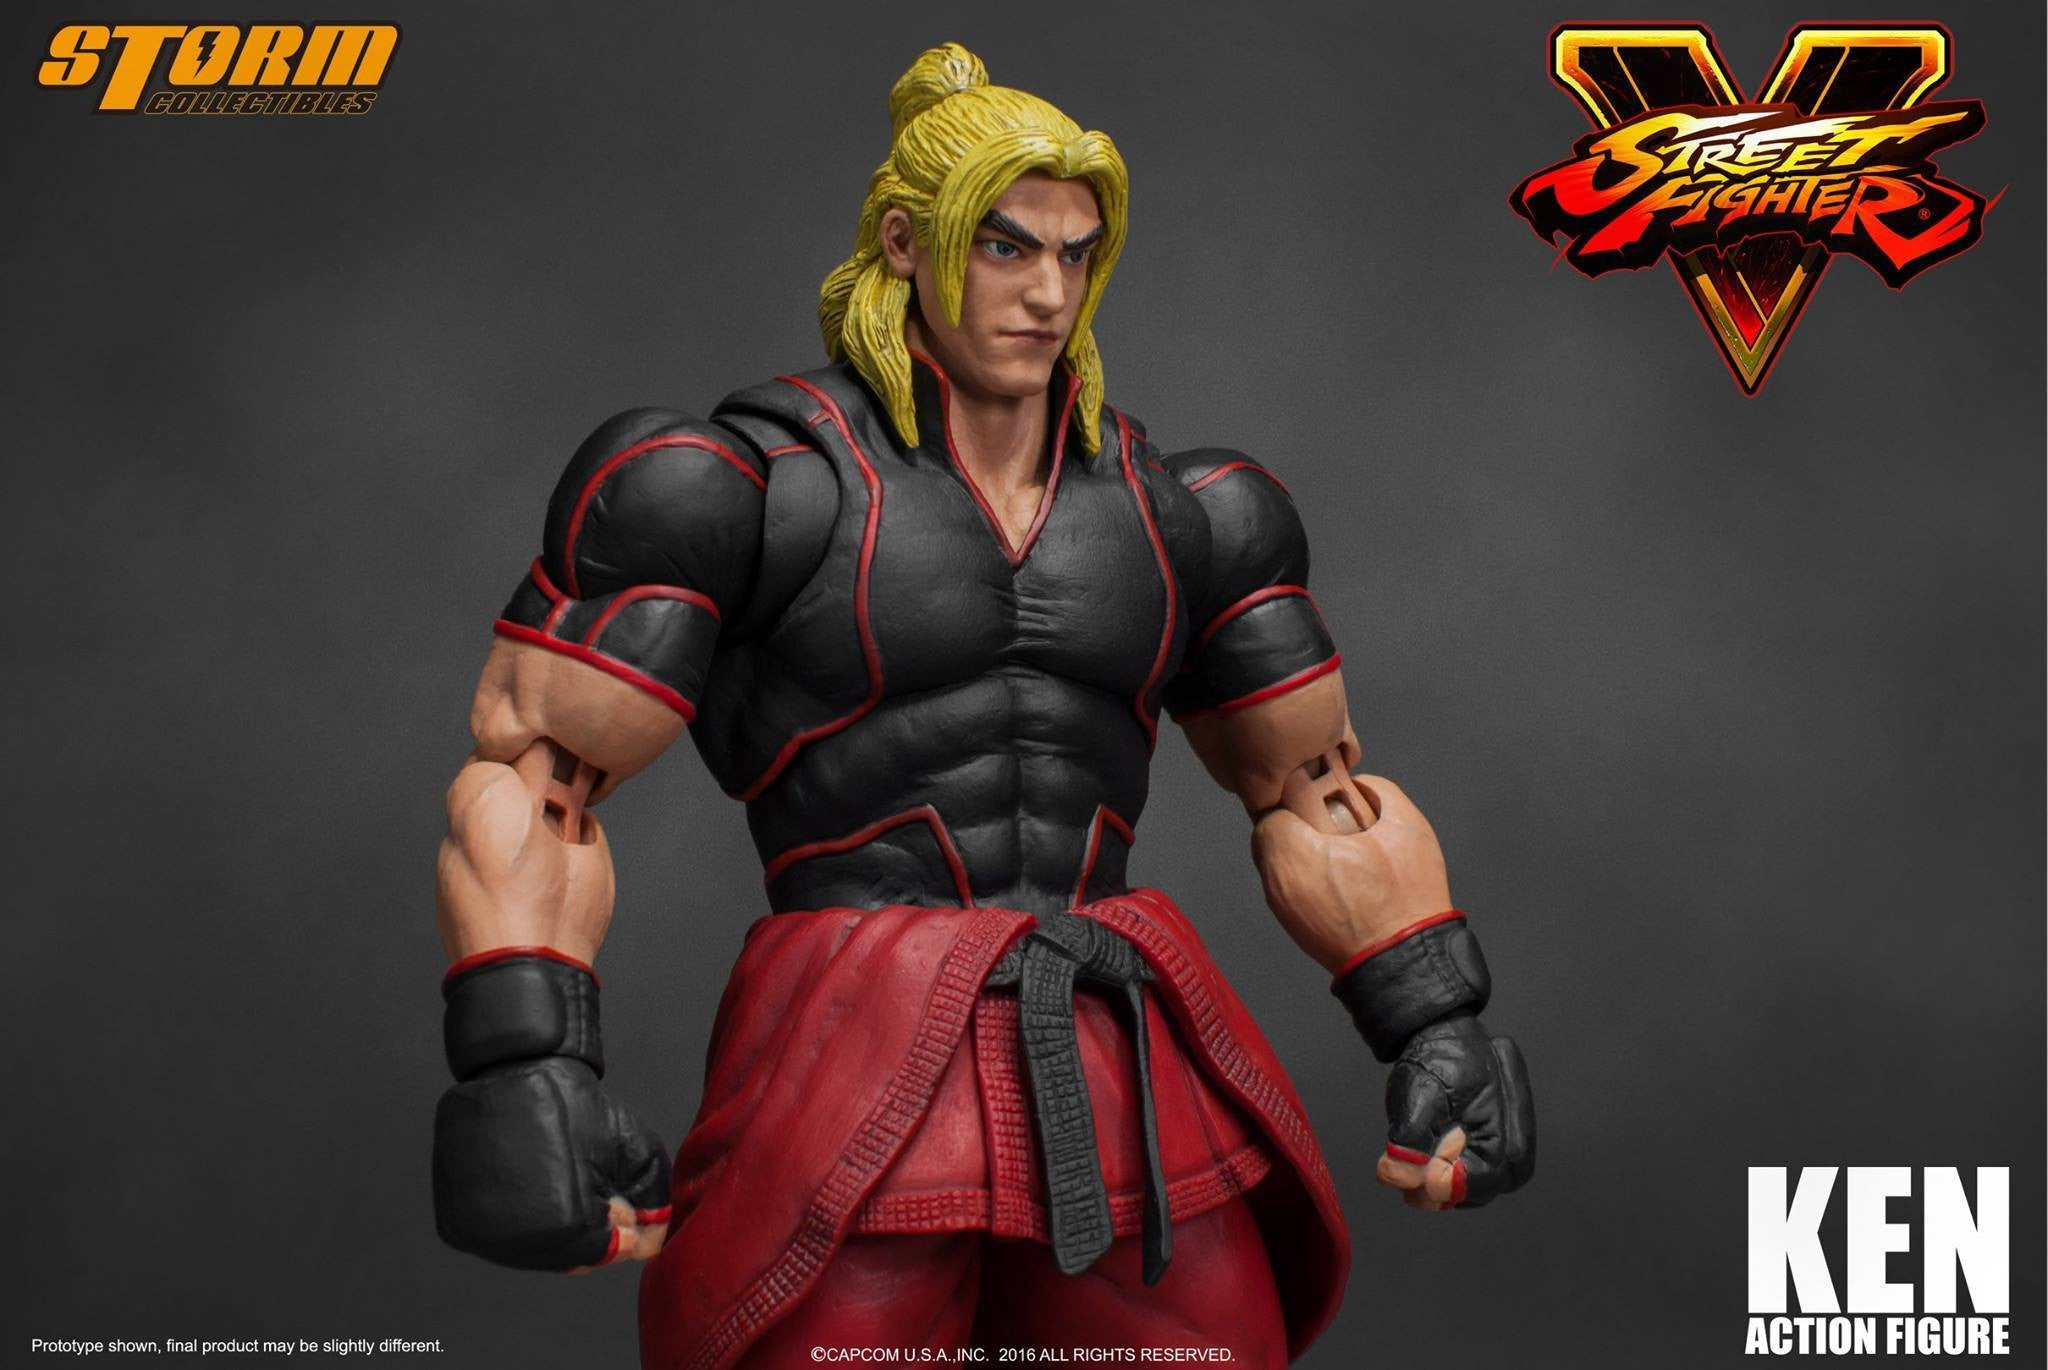 Storm Collectibles - 1:12 Scale Action Figure - Street Fighter V - Ken - Marvelous Toys - 14